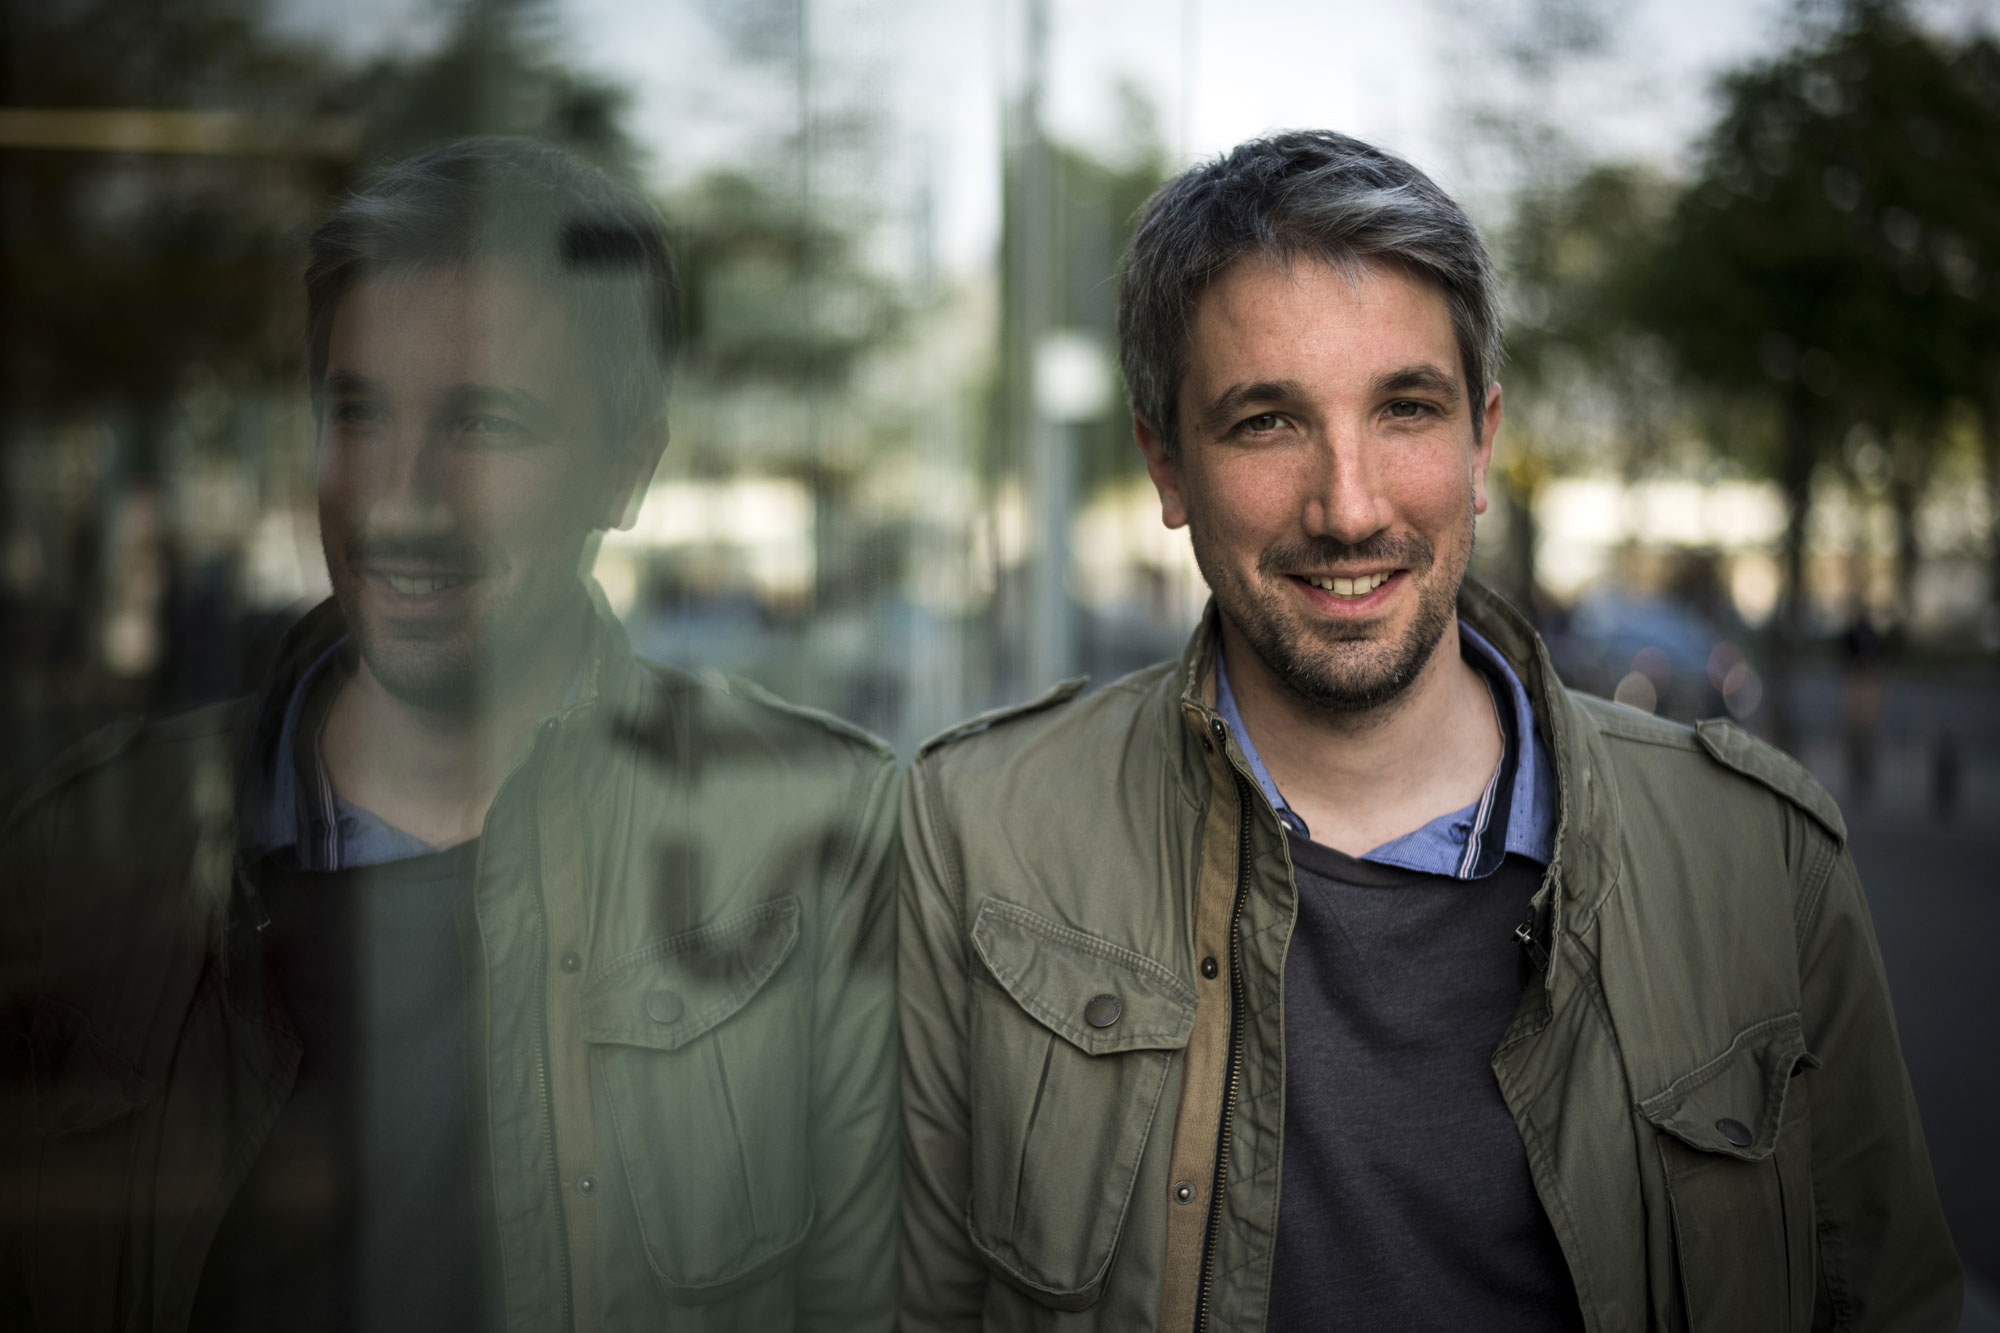 Portrait de Guillaume Meurice, à Paris, le 5 avril 2017.